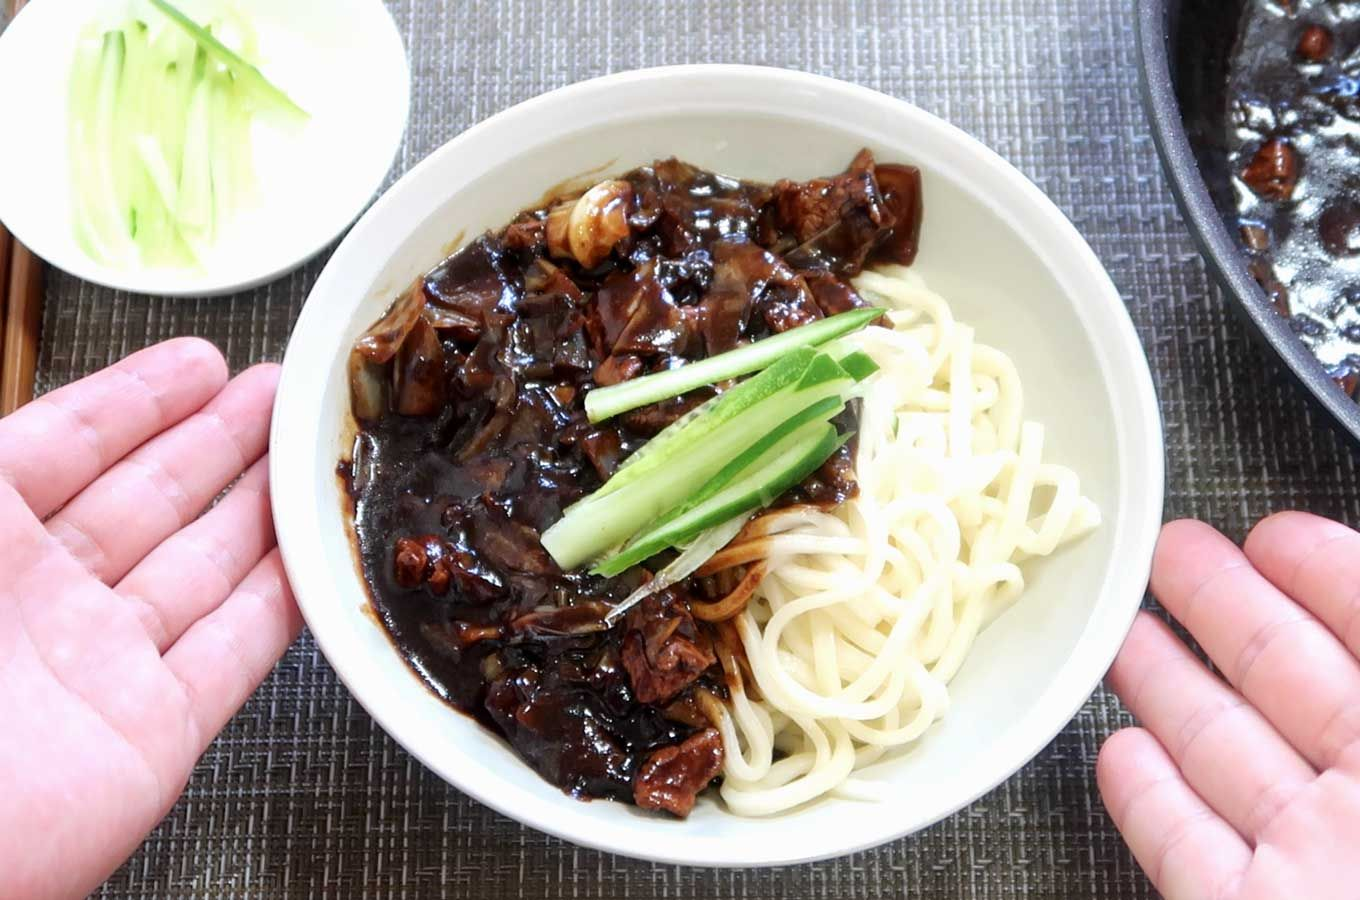 Jajangmyeon Noodles Korea S Favorite Chinese Dish Recipe Popular Chinese Food Chinese Dishes Asian Recipes